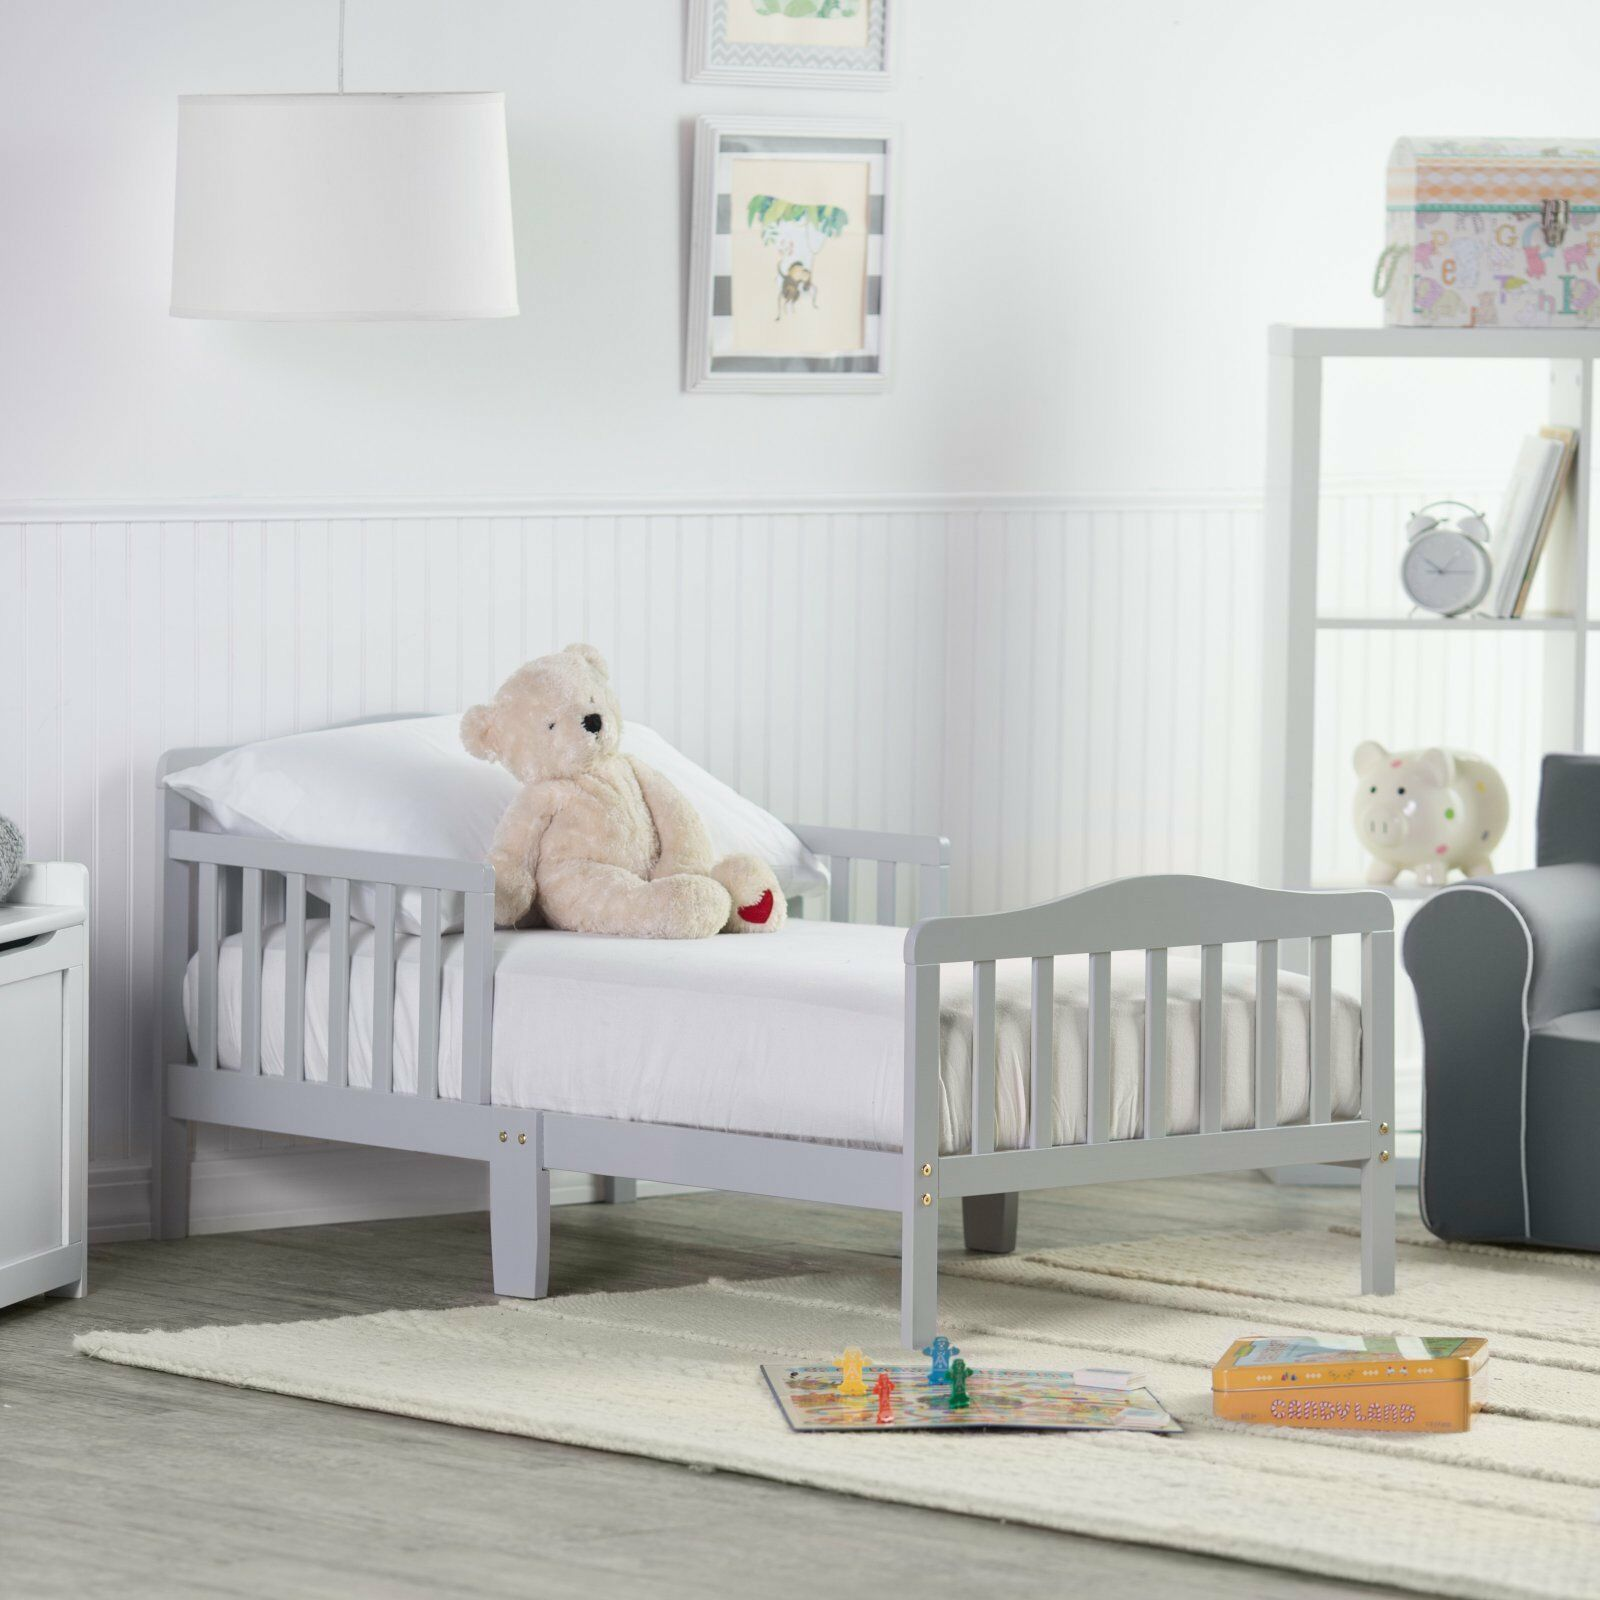 Details about Baby Toddler Bed Kids Children Wood Bedroom Furniture w/  Safety Rails Gray